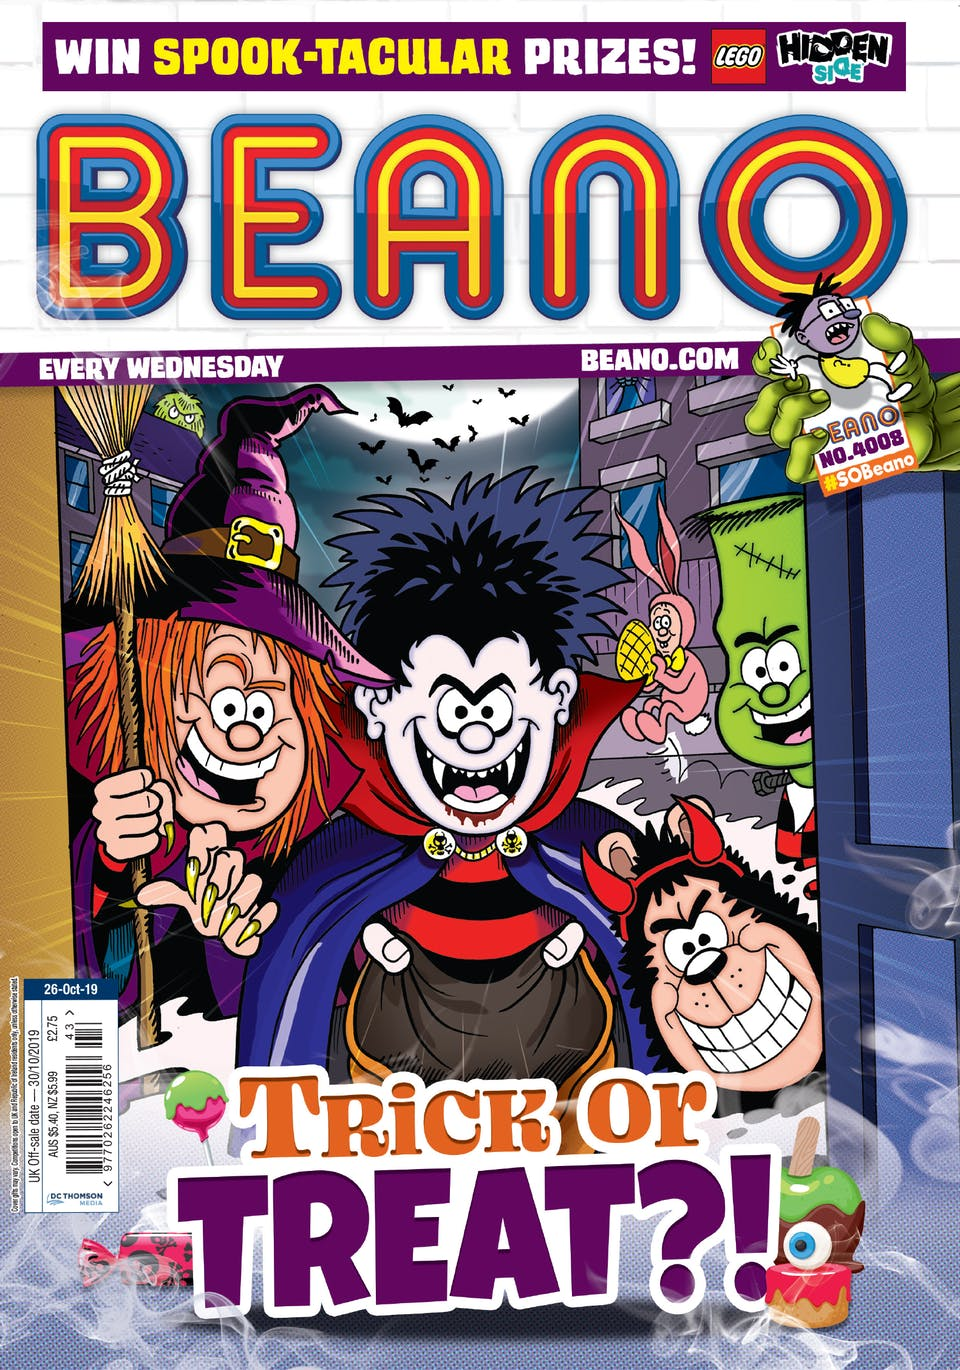 Inside Beano 4008 - Trick or Treat?!